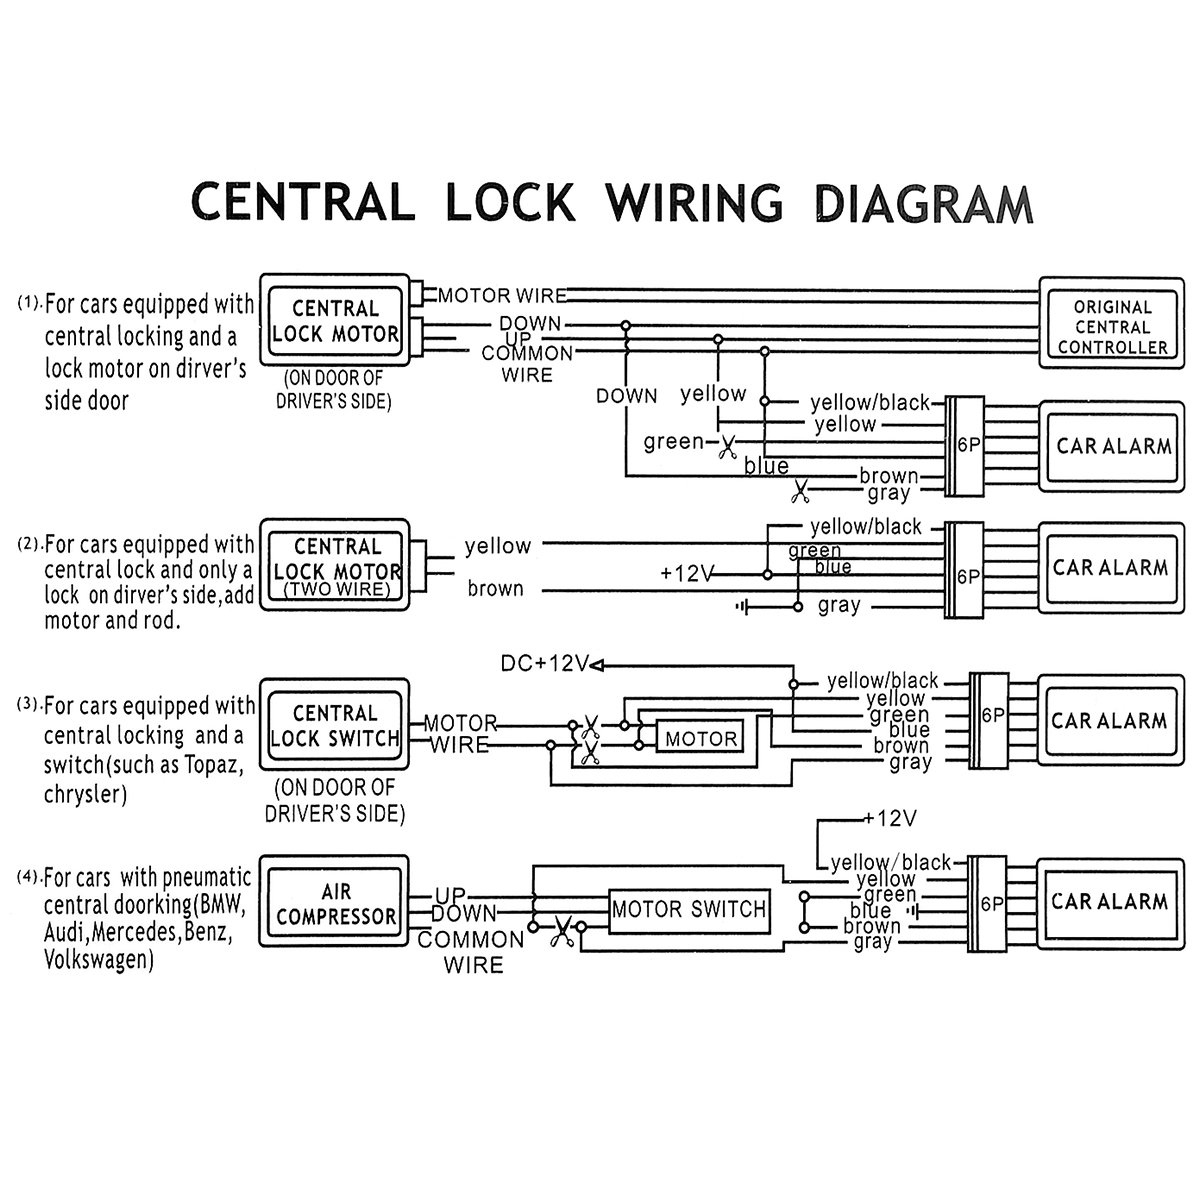 hight resolution of audi alarm wiring diagram diagram data schema relay wiring diagram volkswagen alarm wiring diagram basic electronics